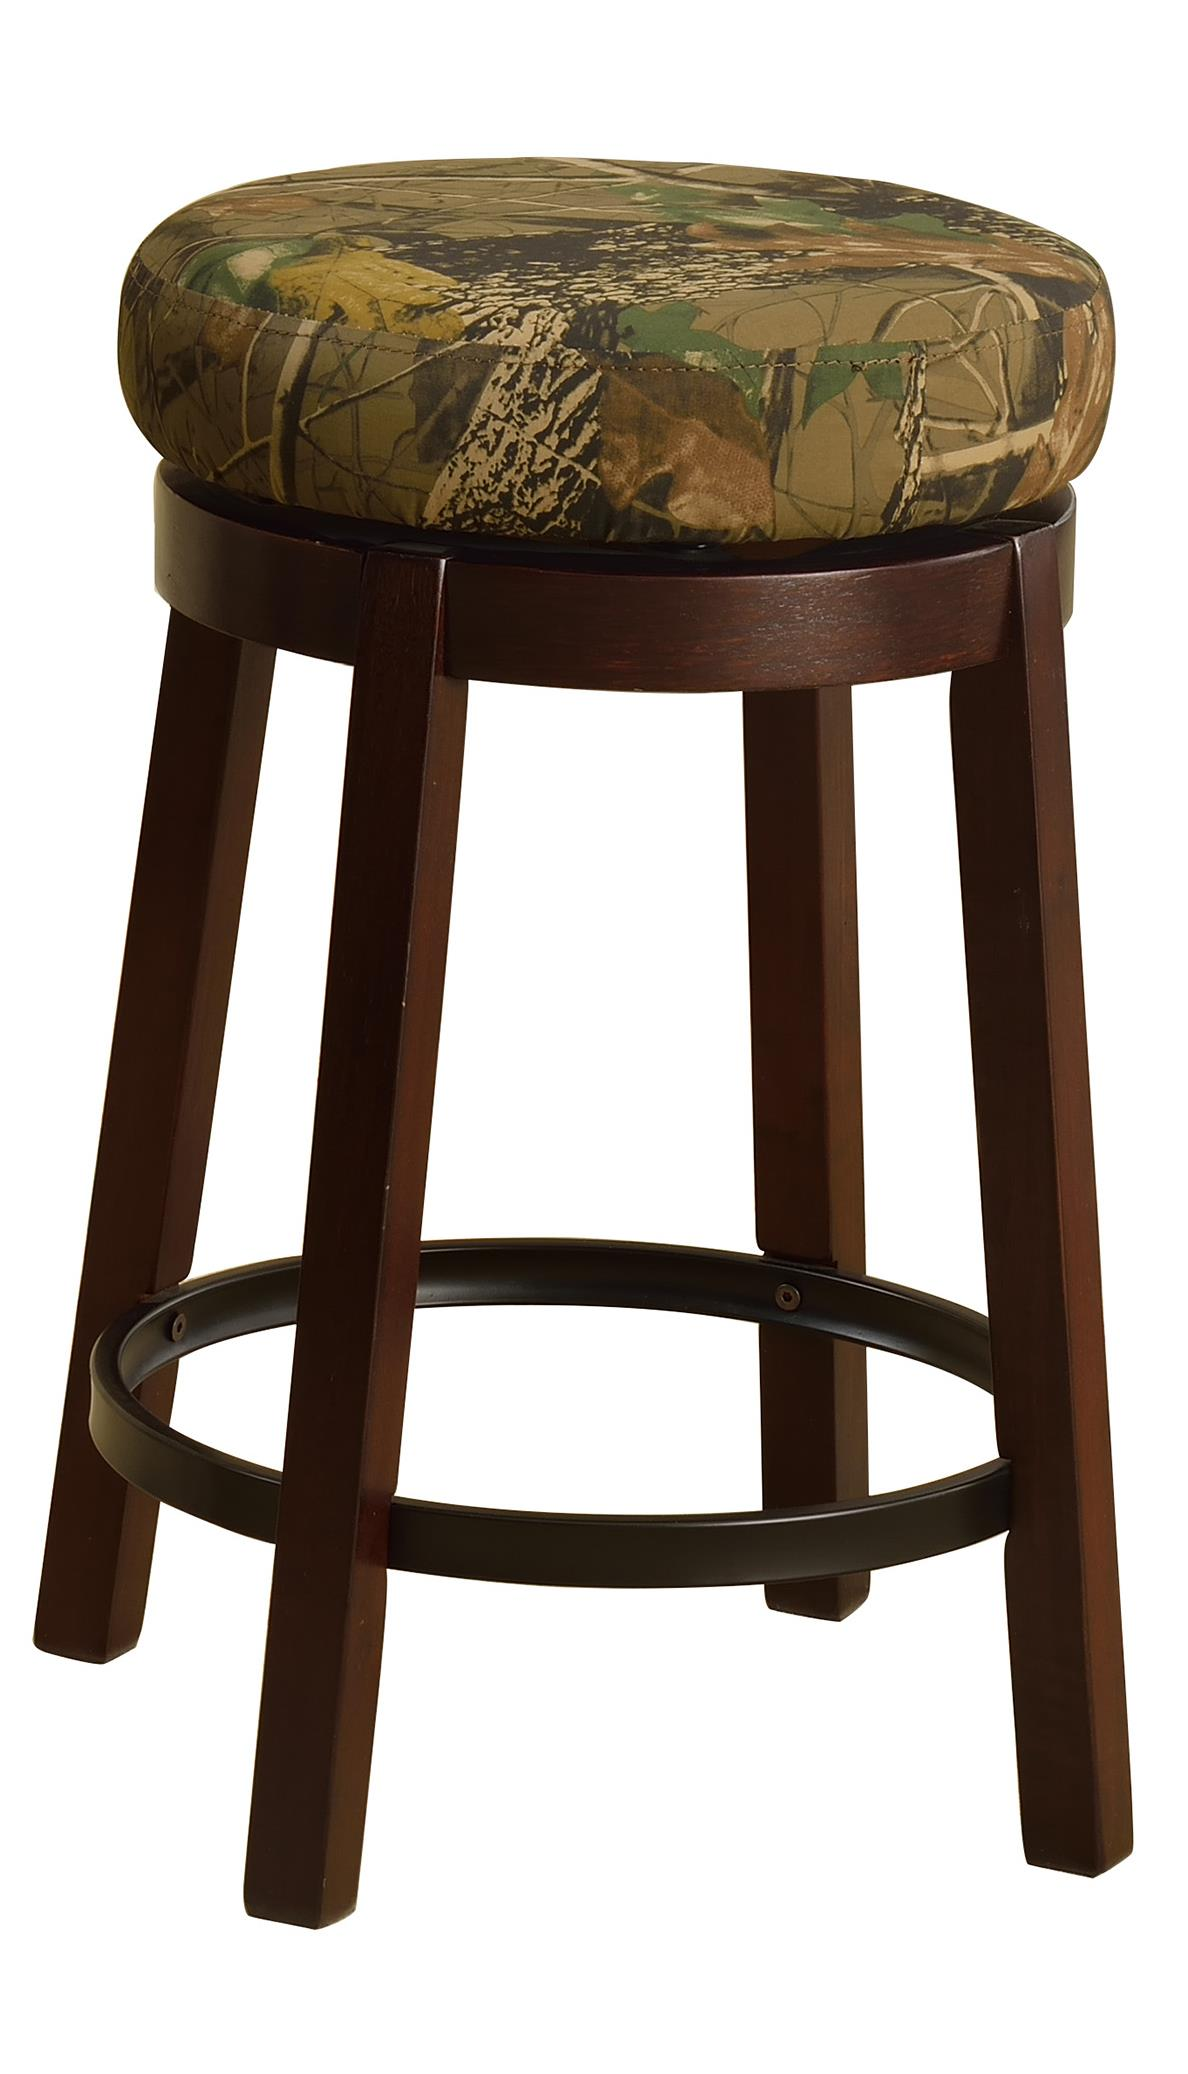 Crown Mark Bar Stools Low Swivel Stool - Item Number: 2794S-24-CAMO